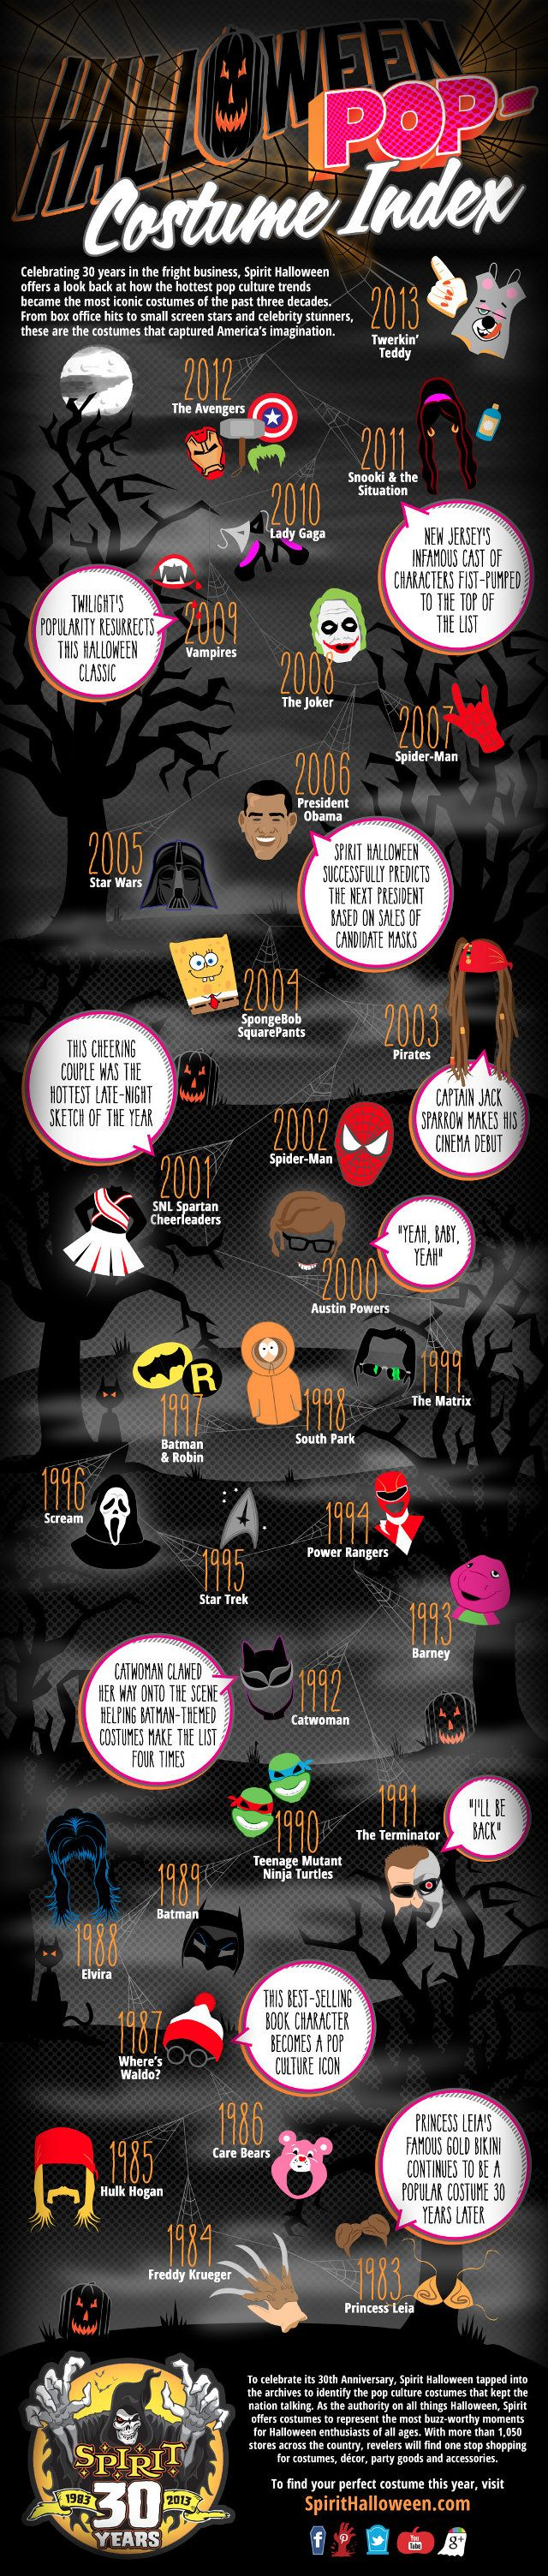 Most Popular Halloween Costumes Over the Last 20 Years!